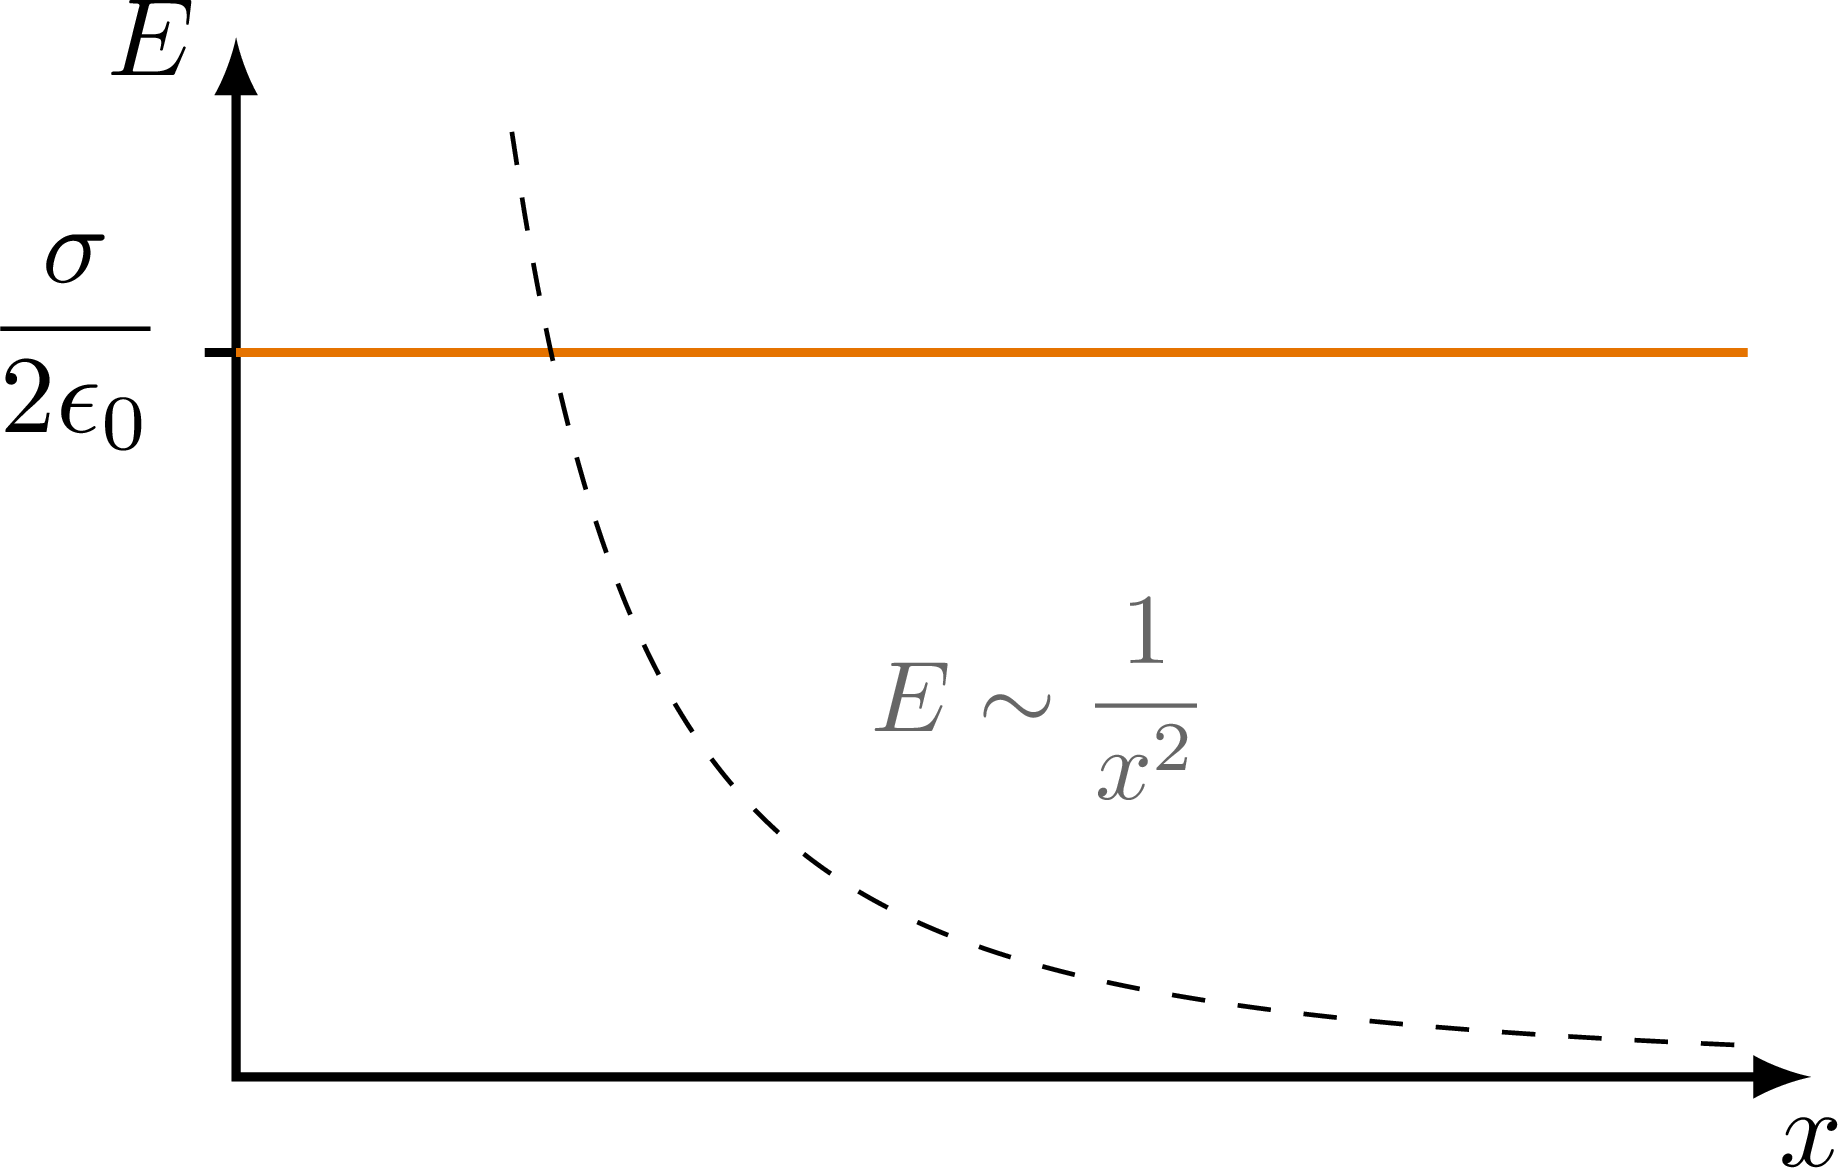 electric_field_plots-003.png